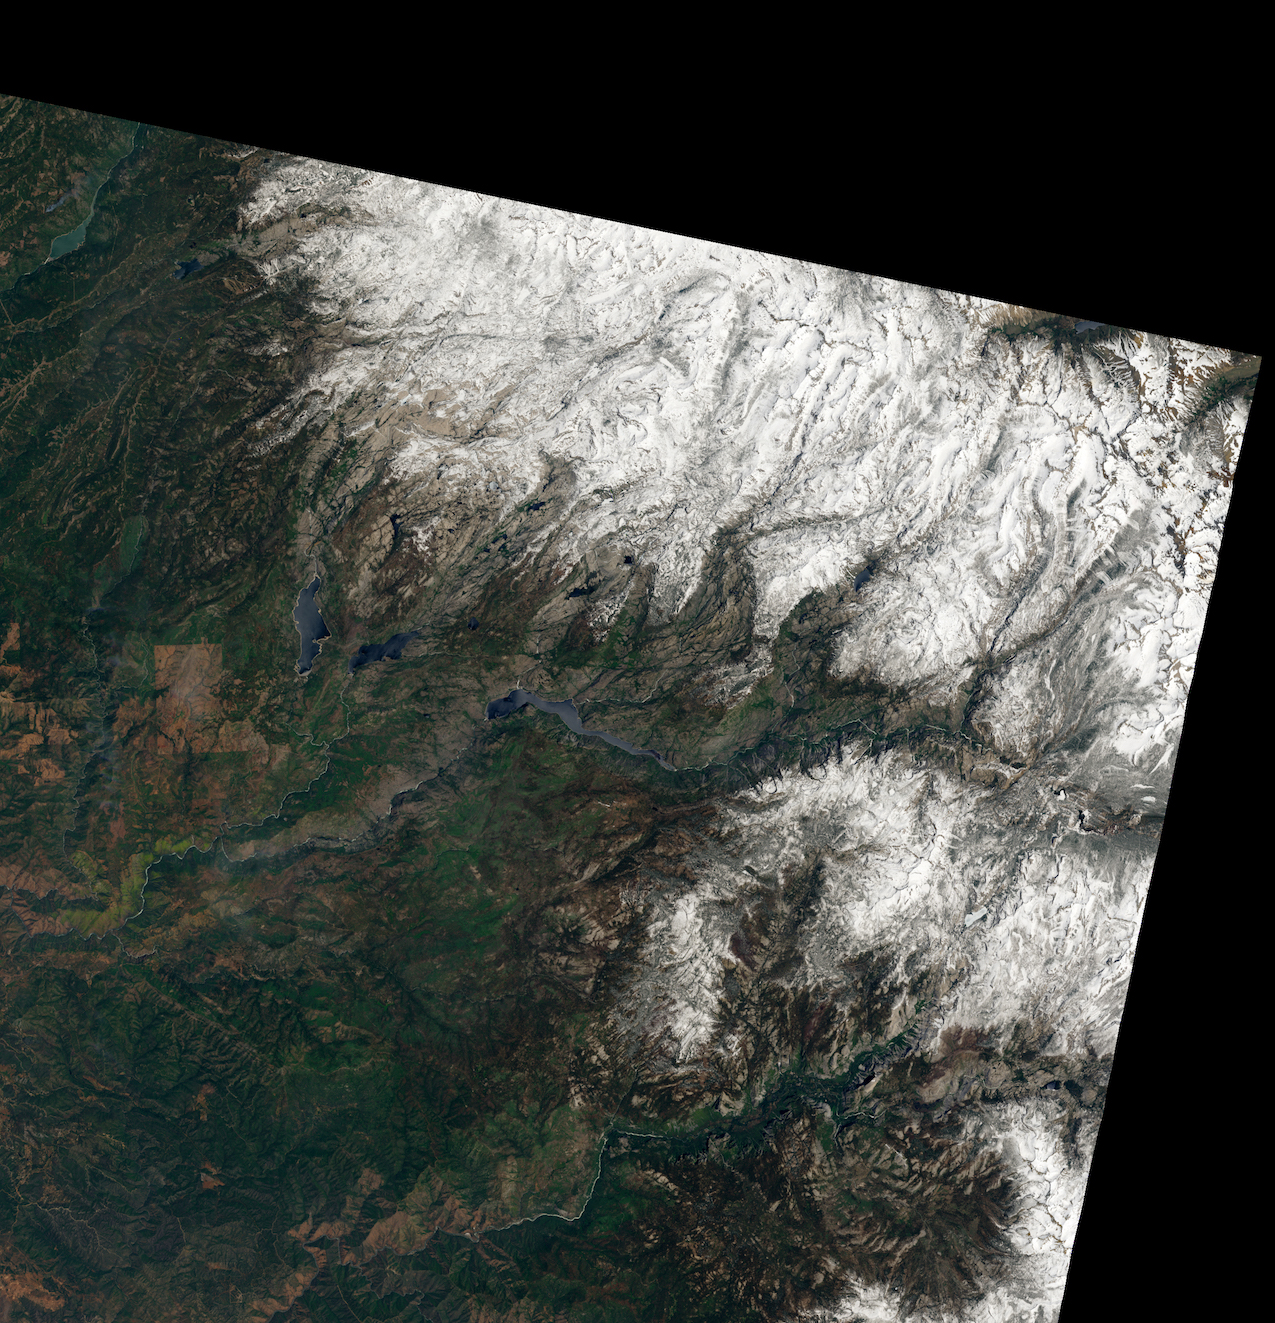 Today's Image of the Day comes thanks to the NASA Earth Observatory and features a look at the snowpack atop the Sierra Nevada mountains.